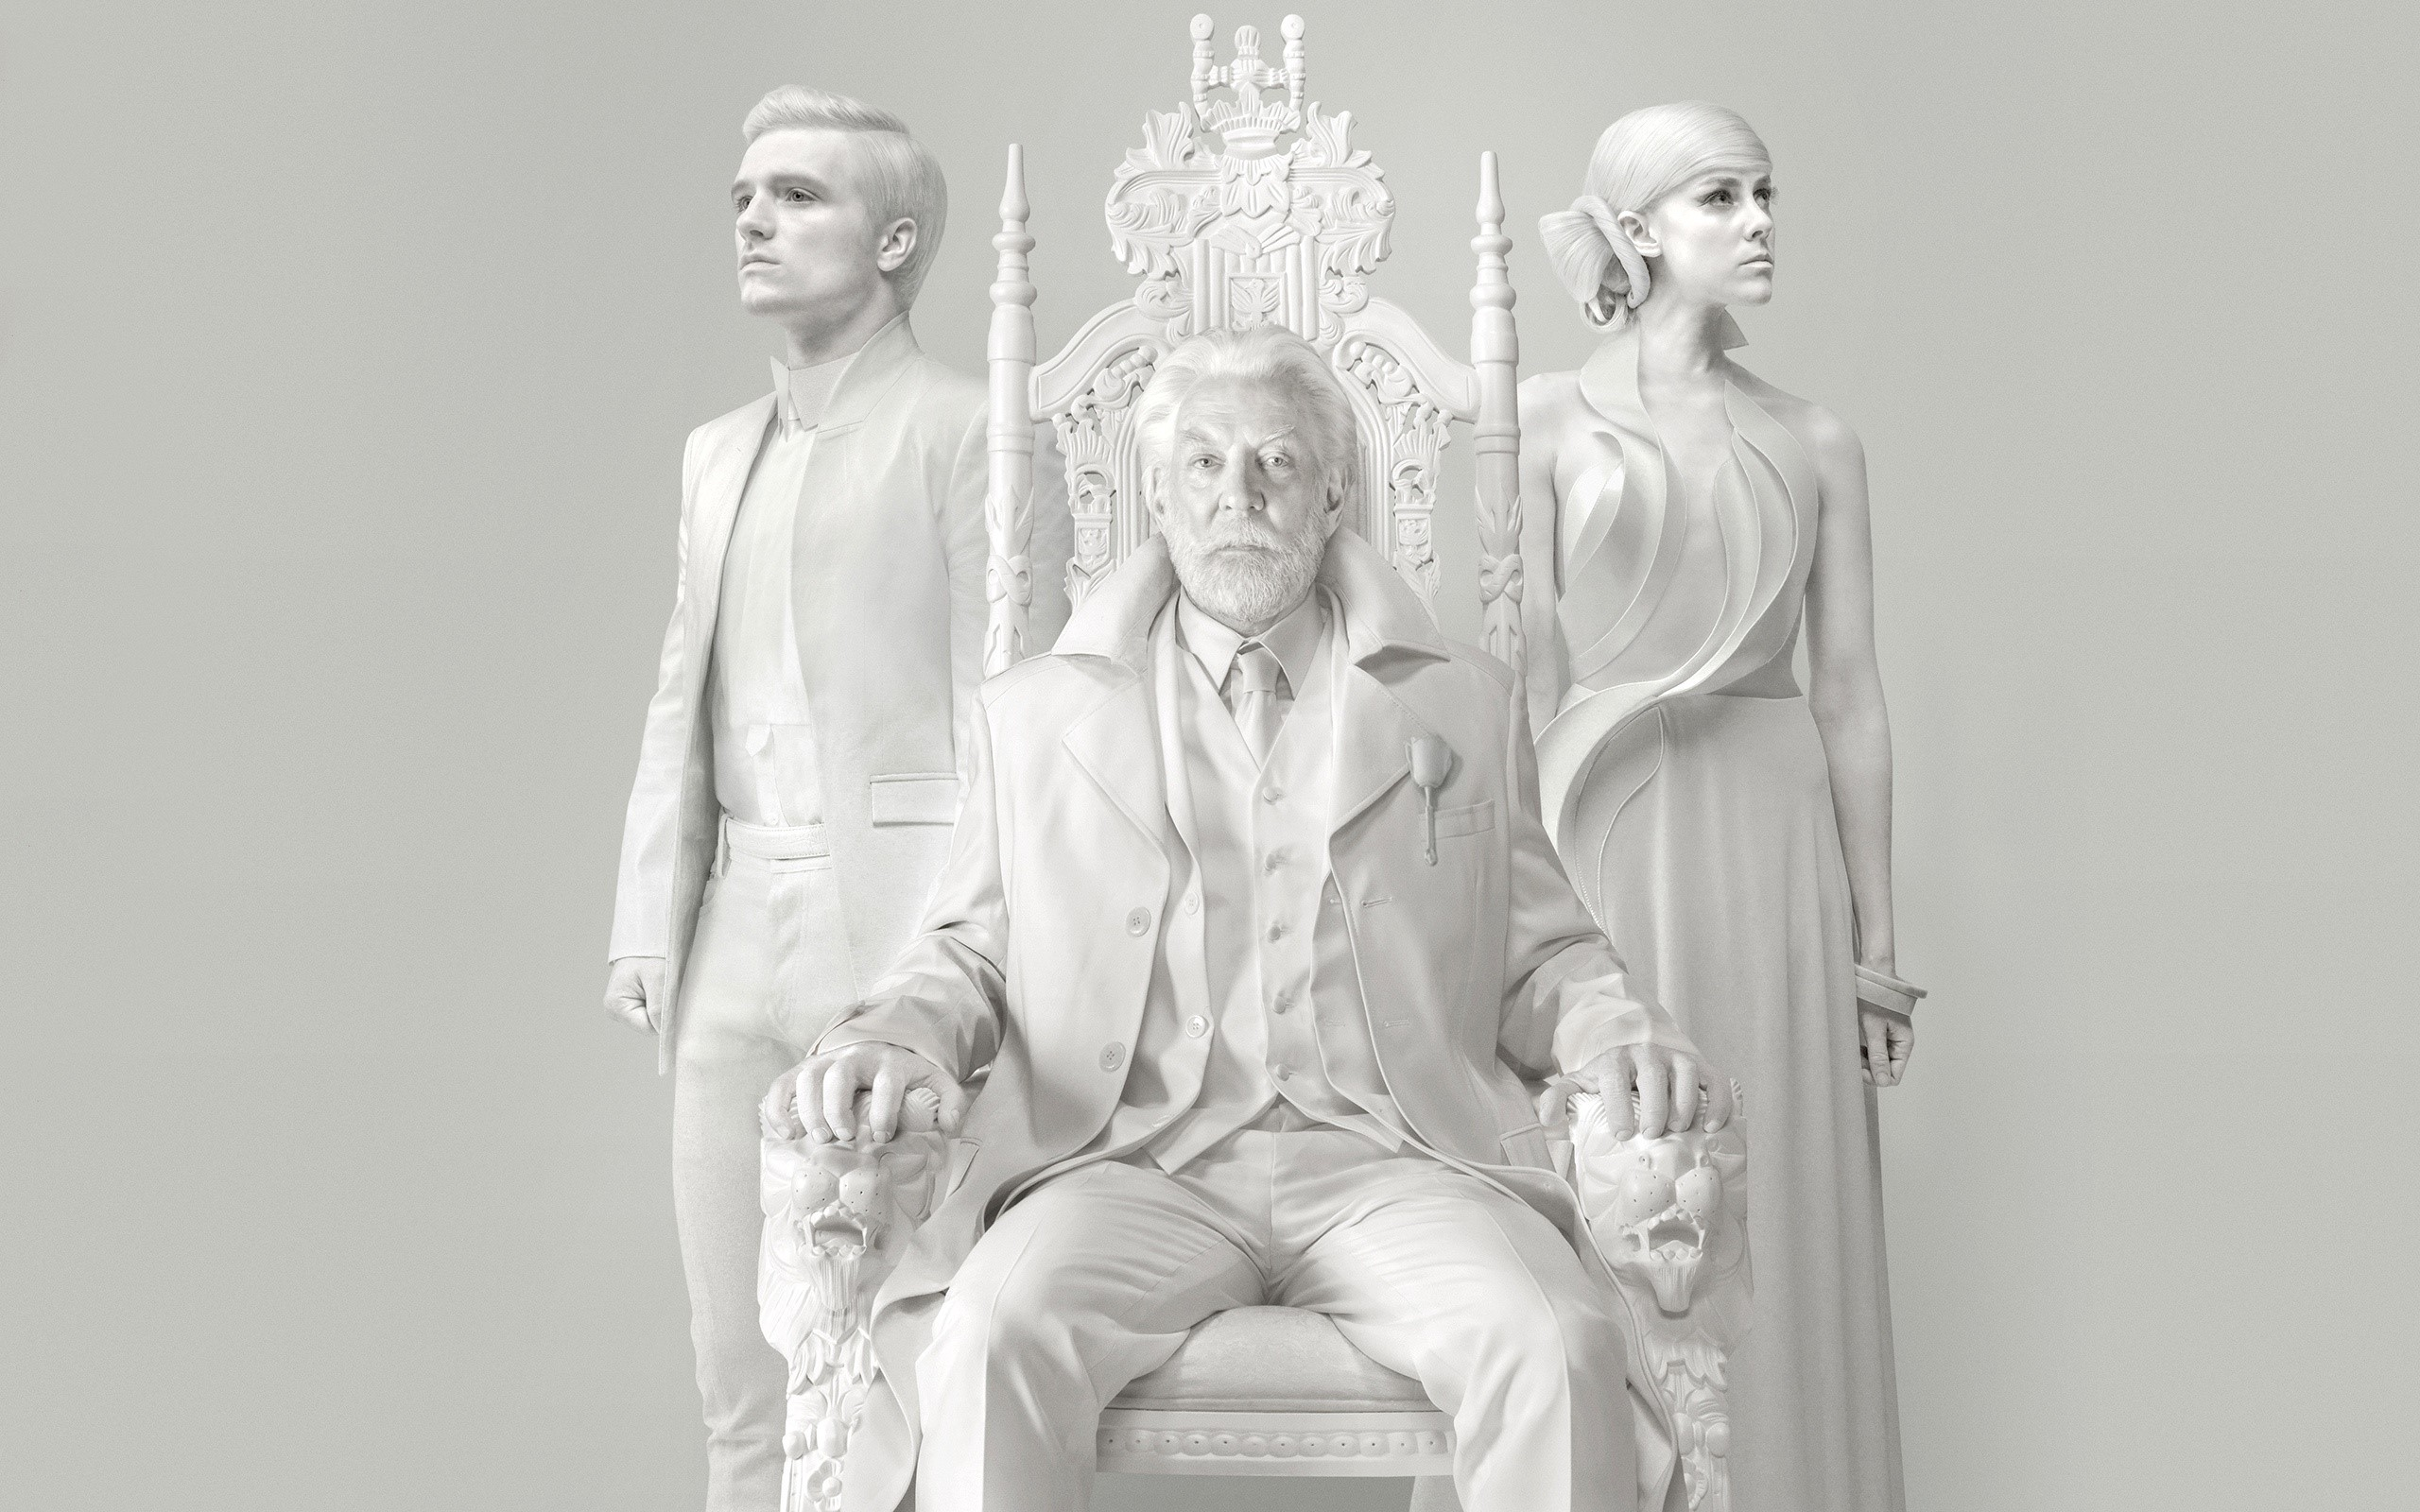 Wallpaper Mockingjay part 1